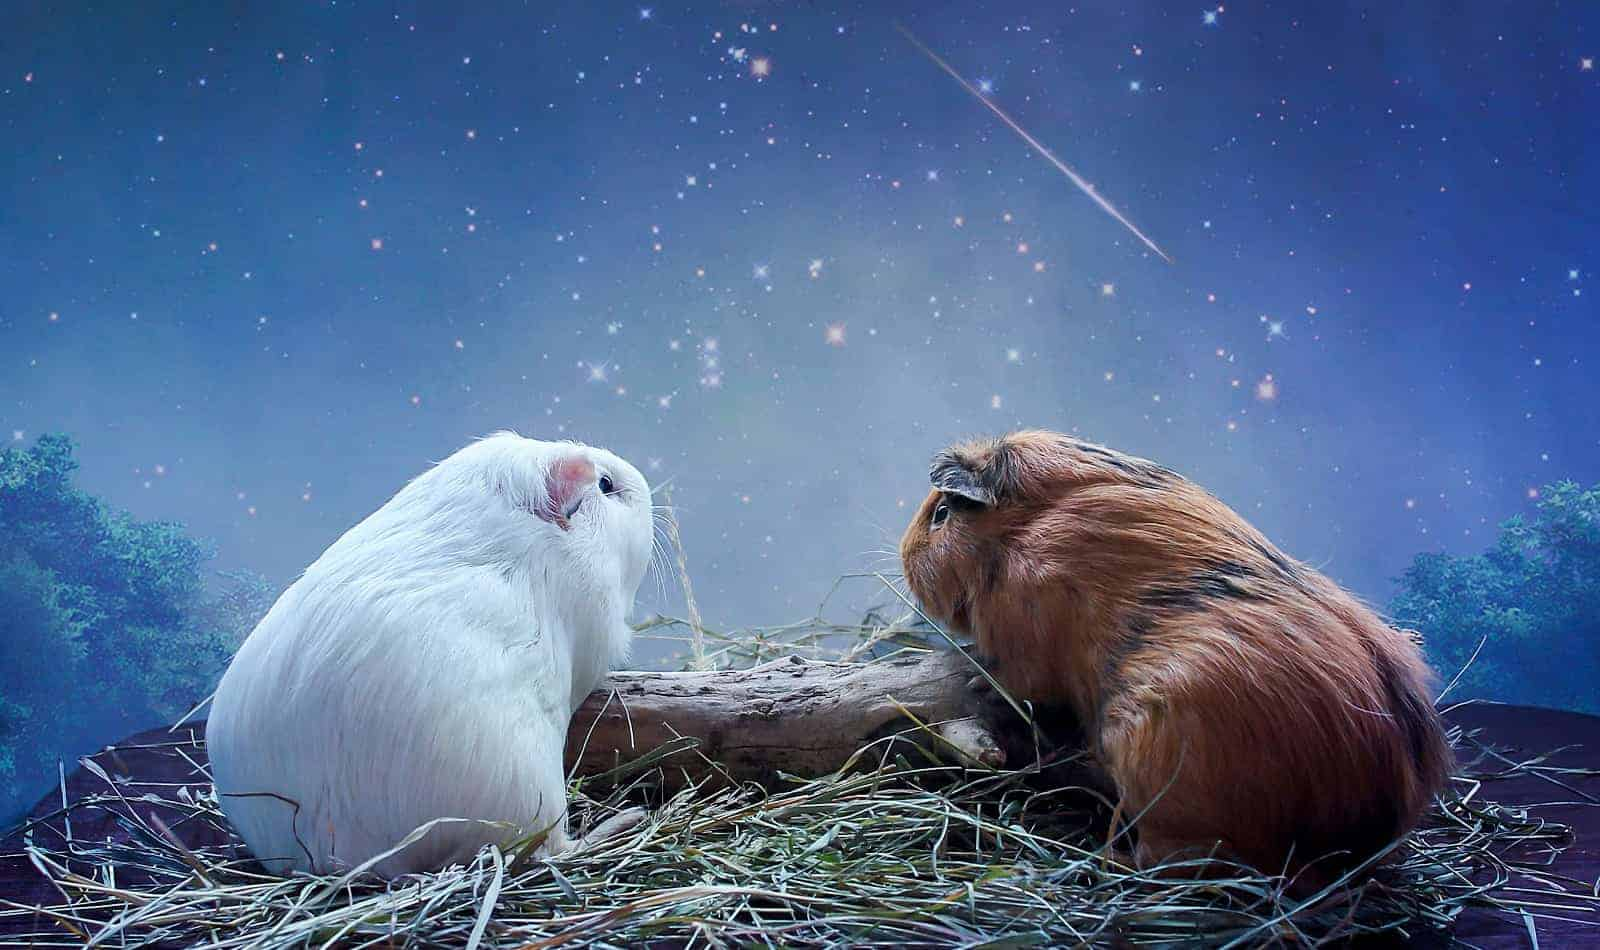 If you're looking for some mystical guinea pig names, get ready to be wowed! We came up with 100 magical ideas. Check them out!